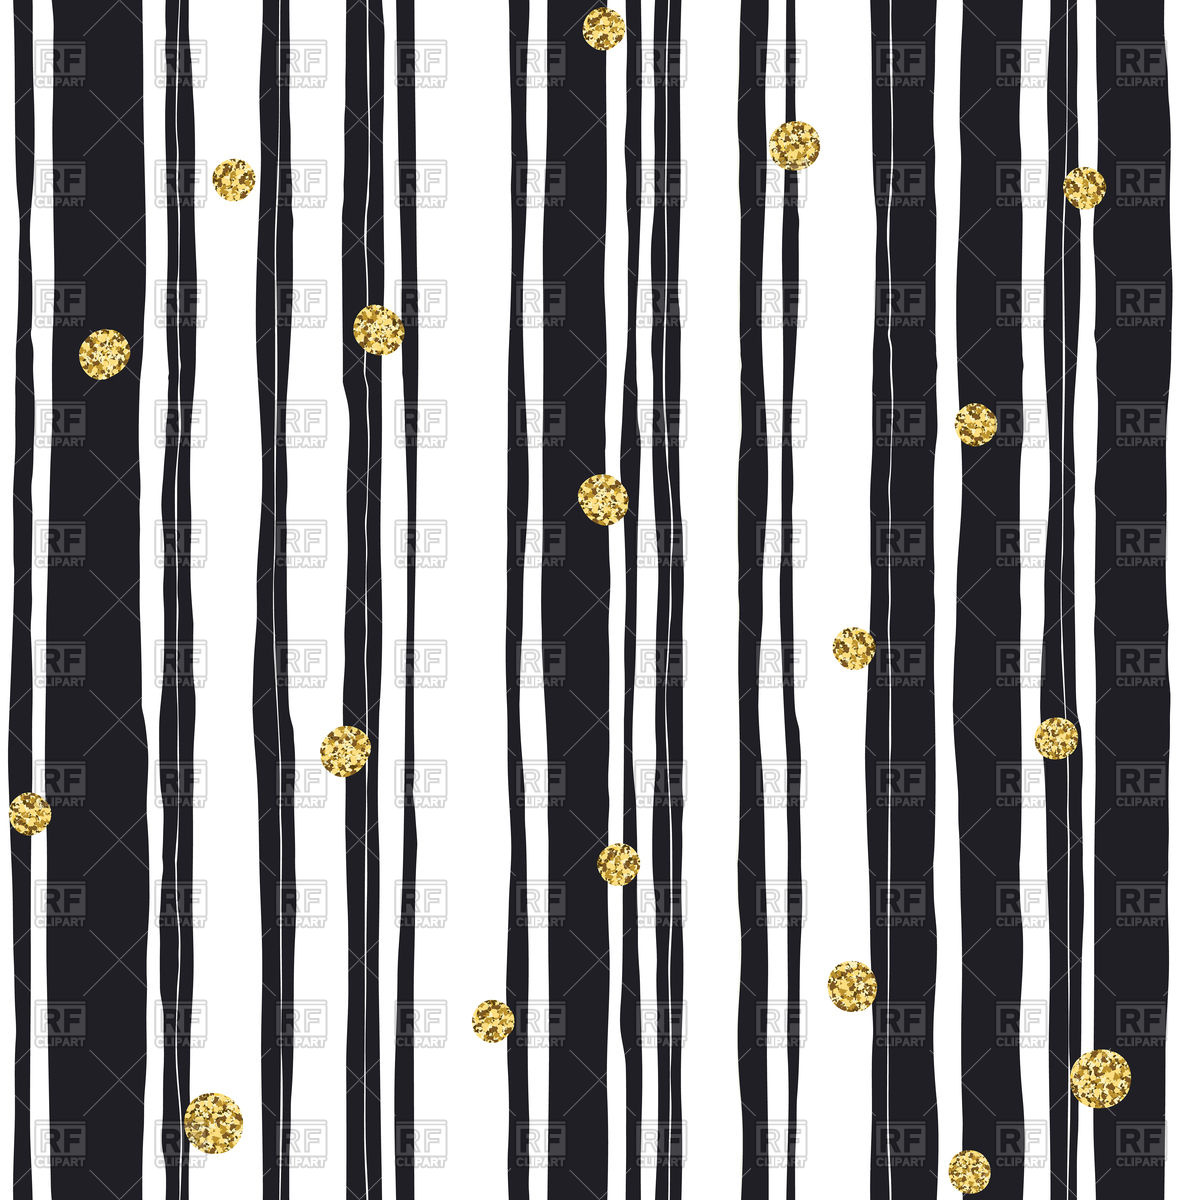 Black white and grey striped clipart.